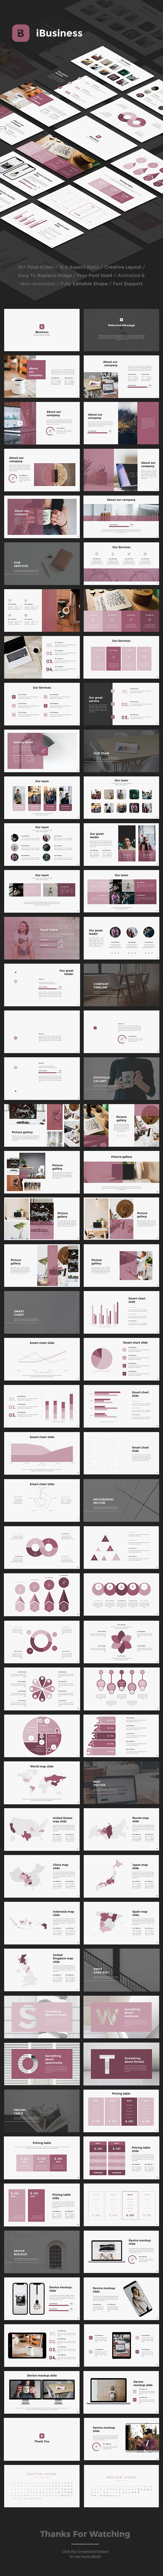 #iBusiness #Google #Slides - Google Slides Presentation Templates